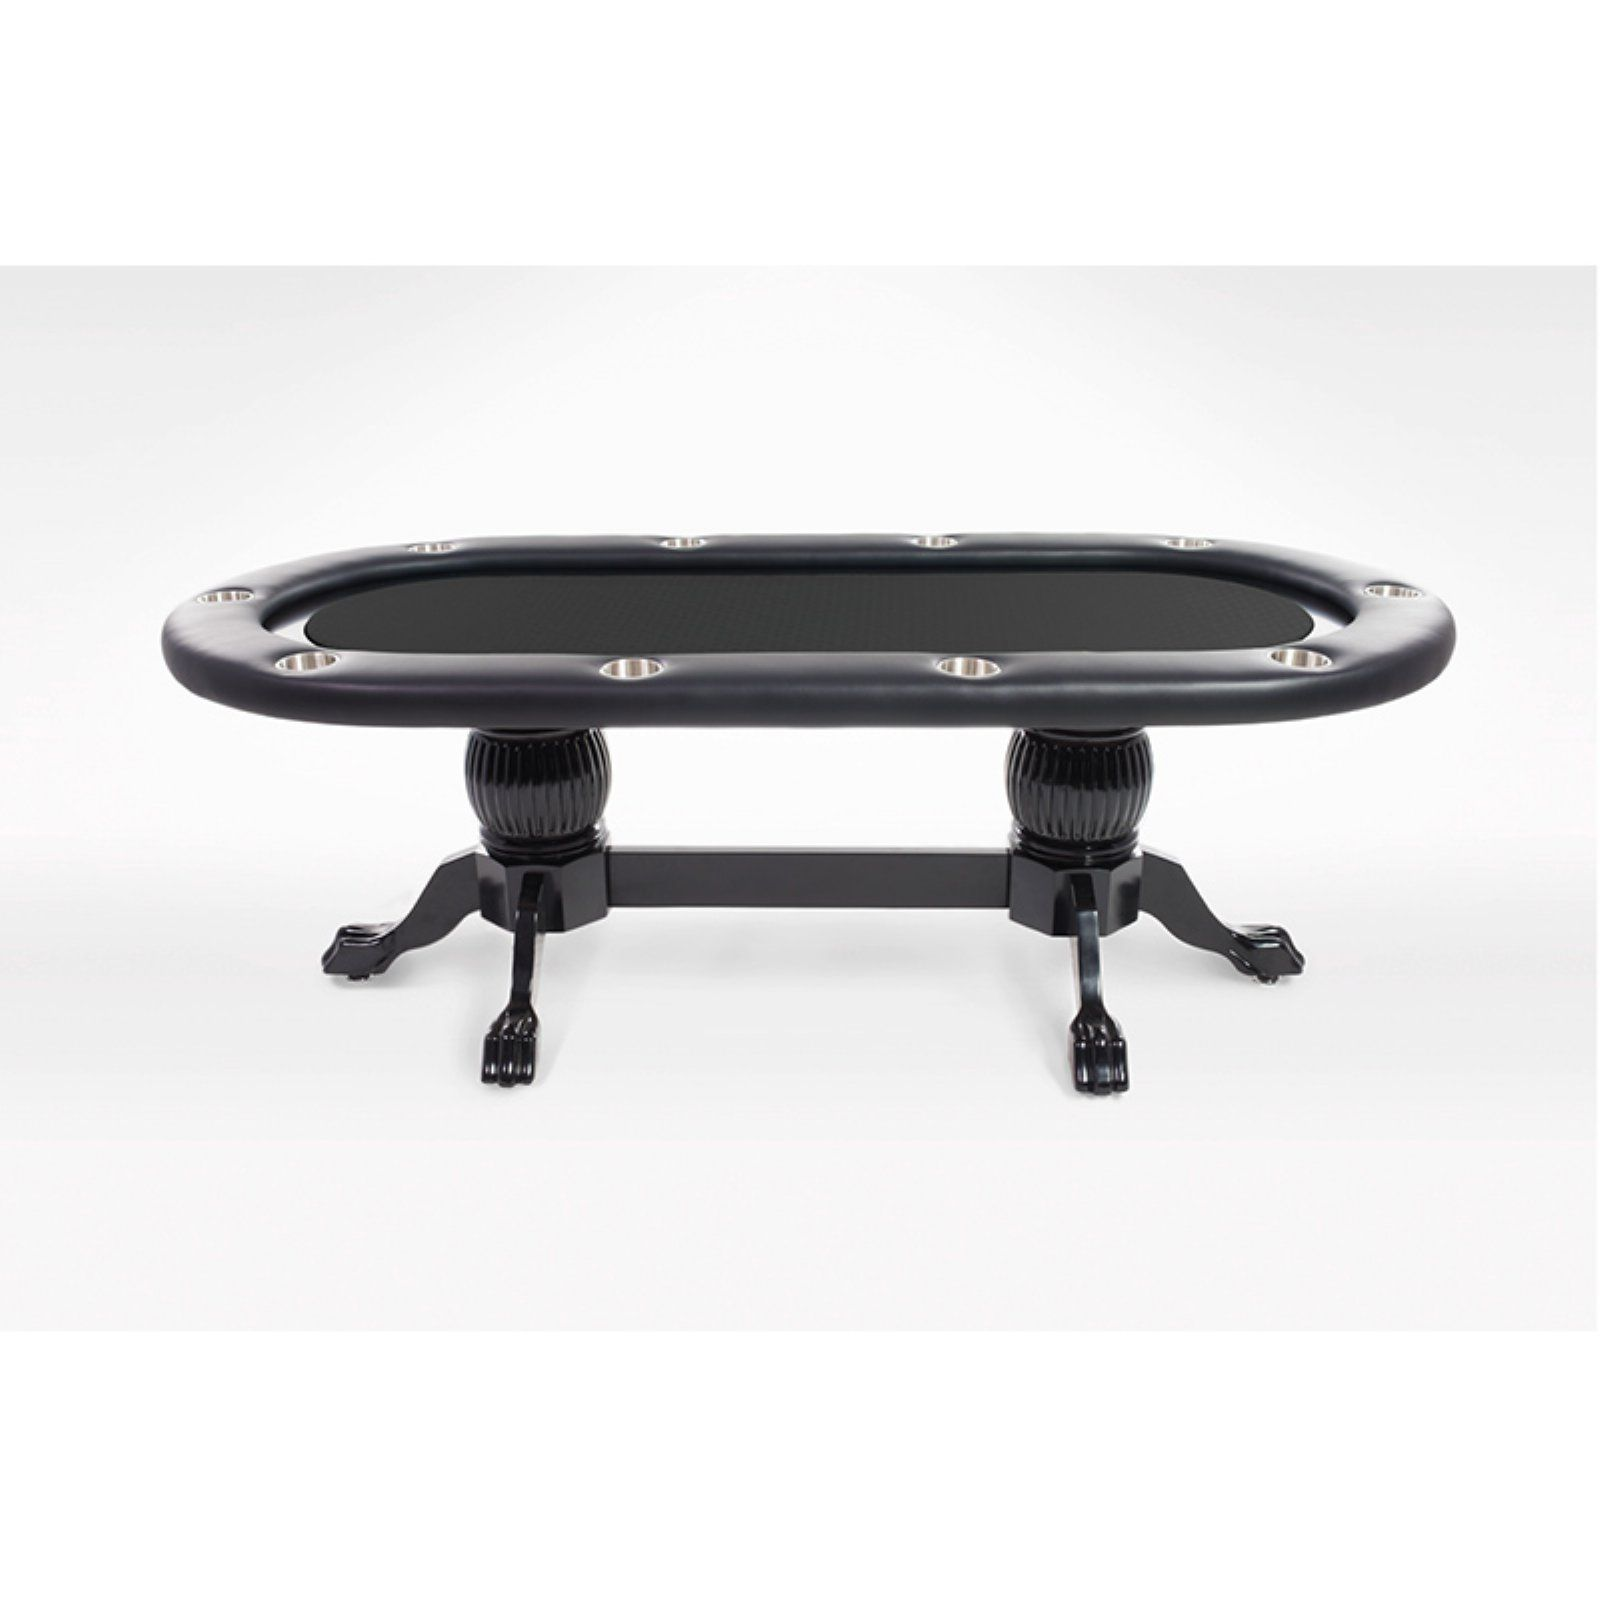 Bbo Poker Tables The Elite Poker Table Black Poker Table Table